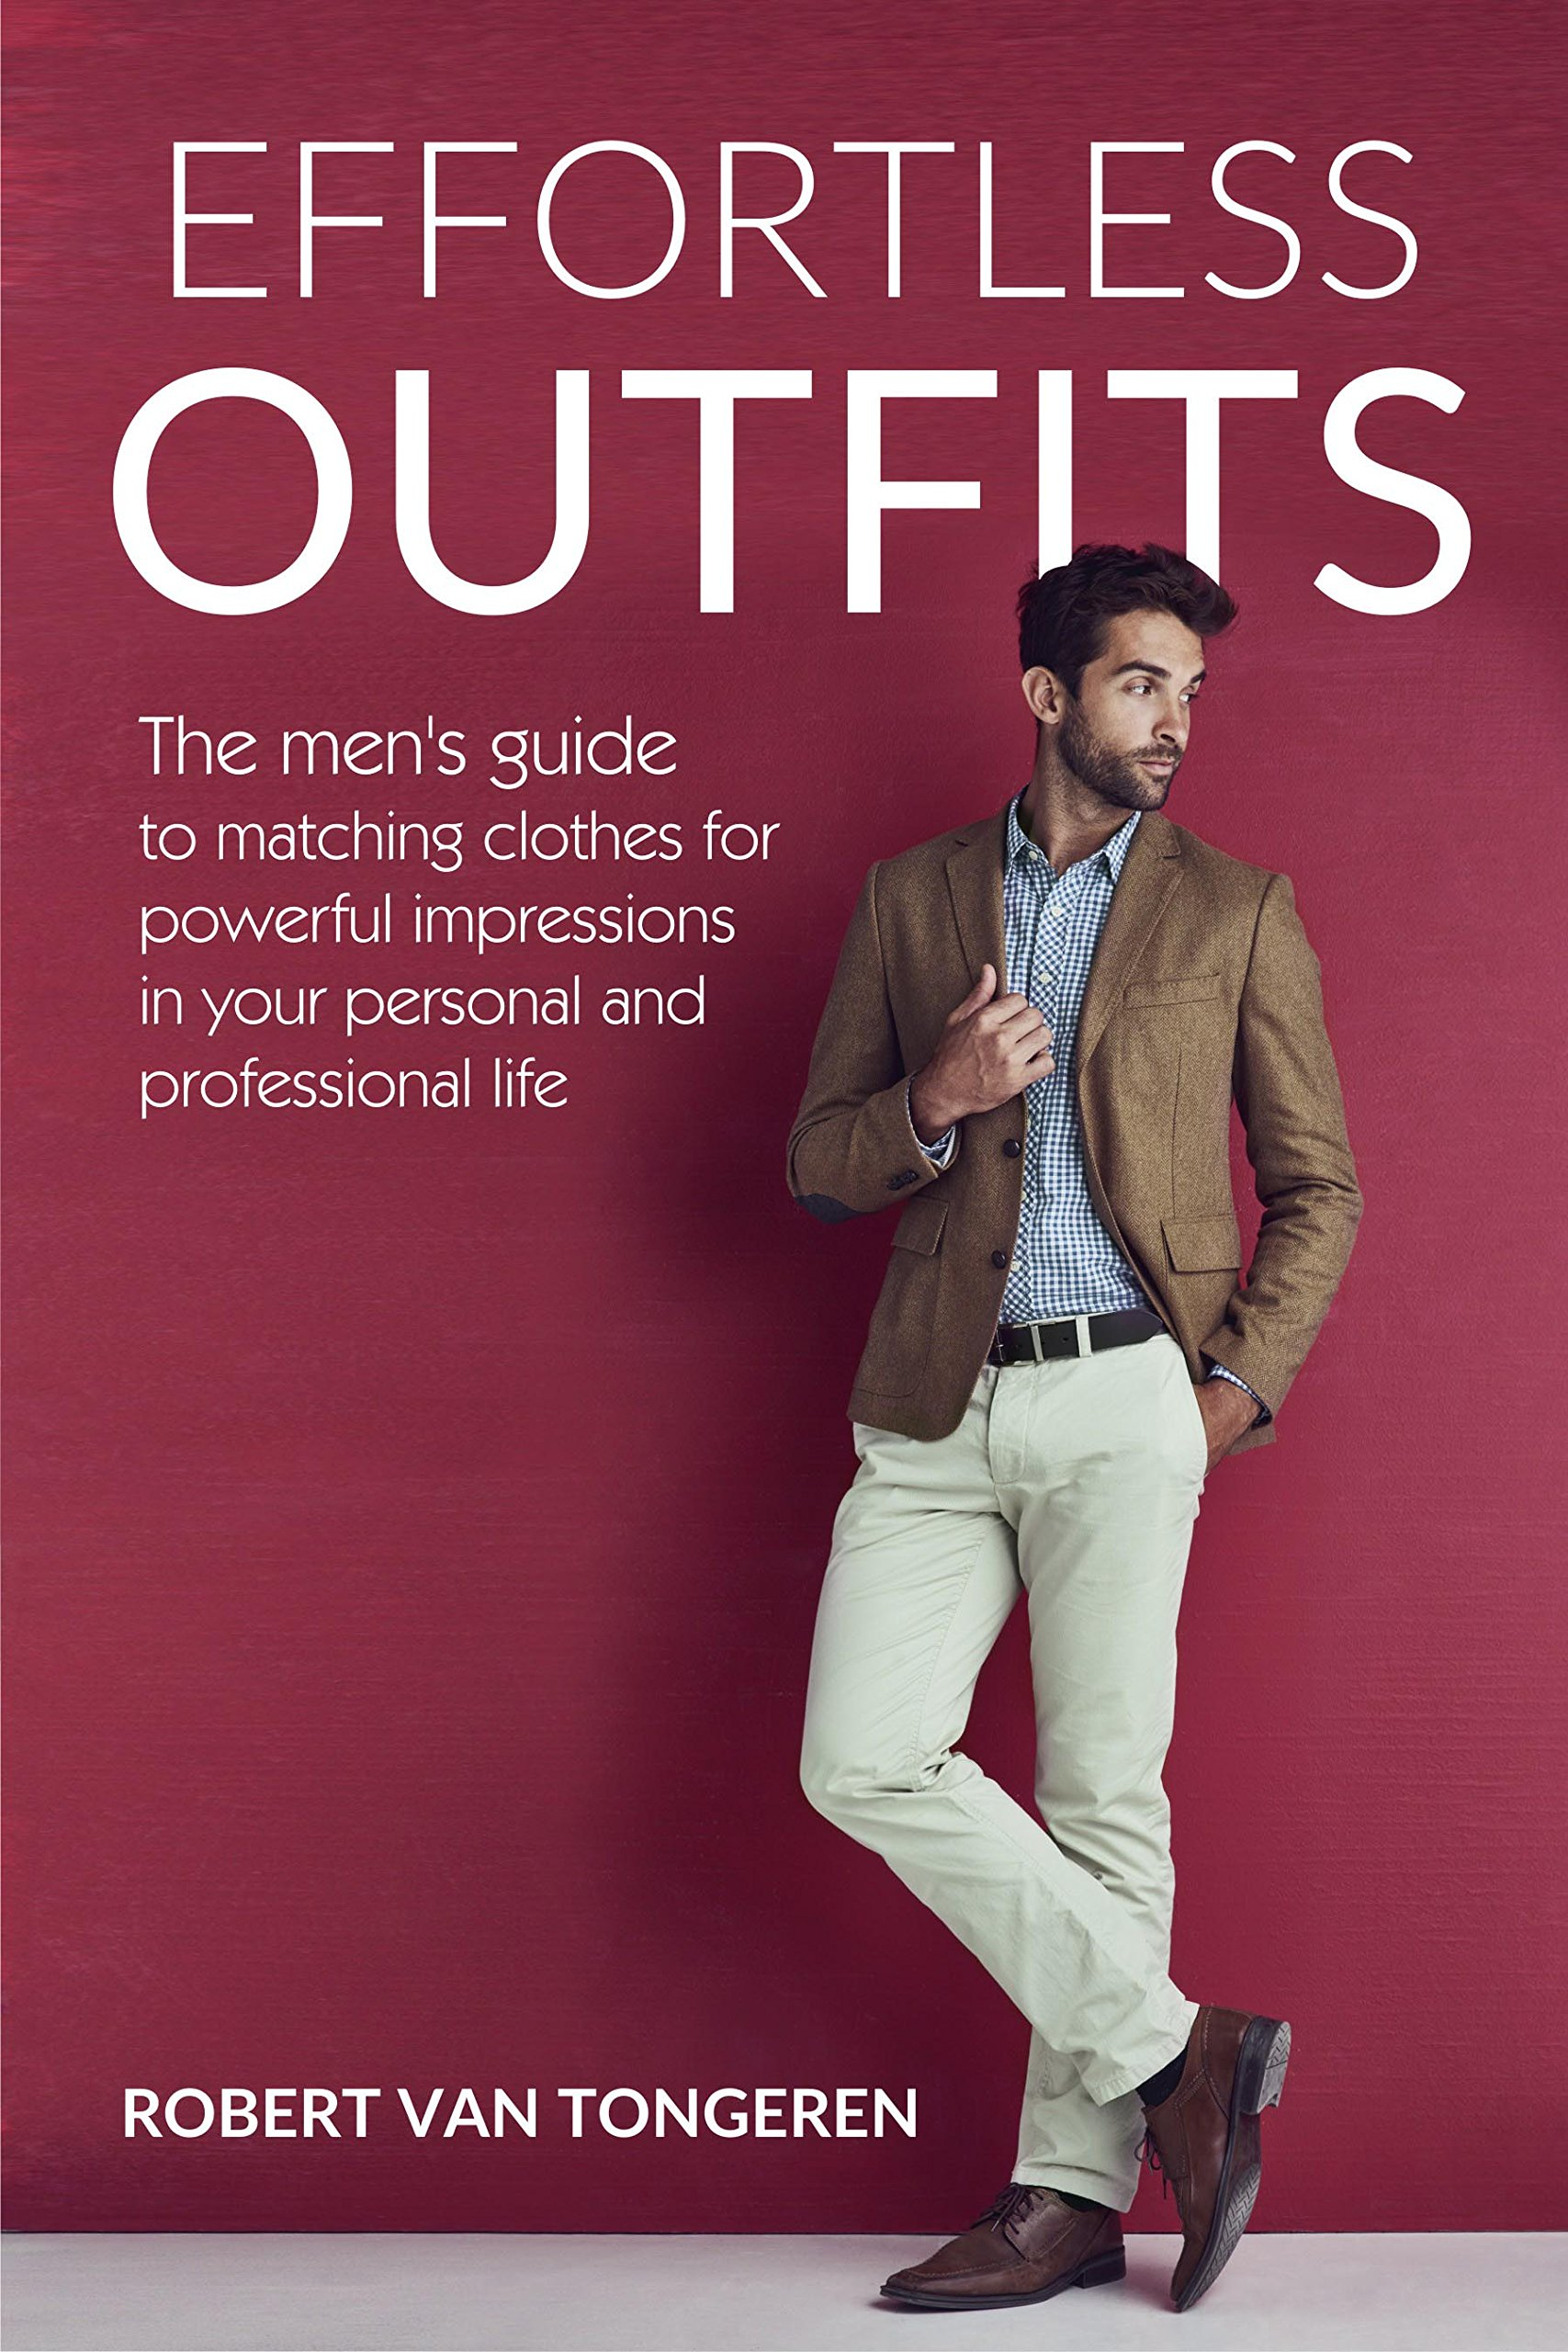 Effortless Outfits: The Men's Guide to Matching